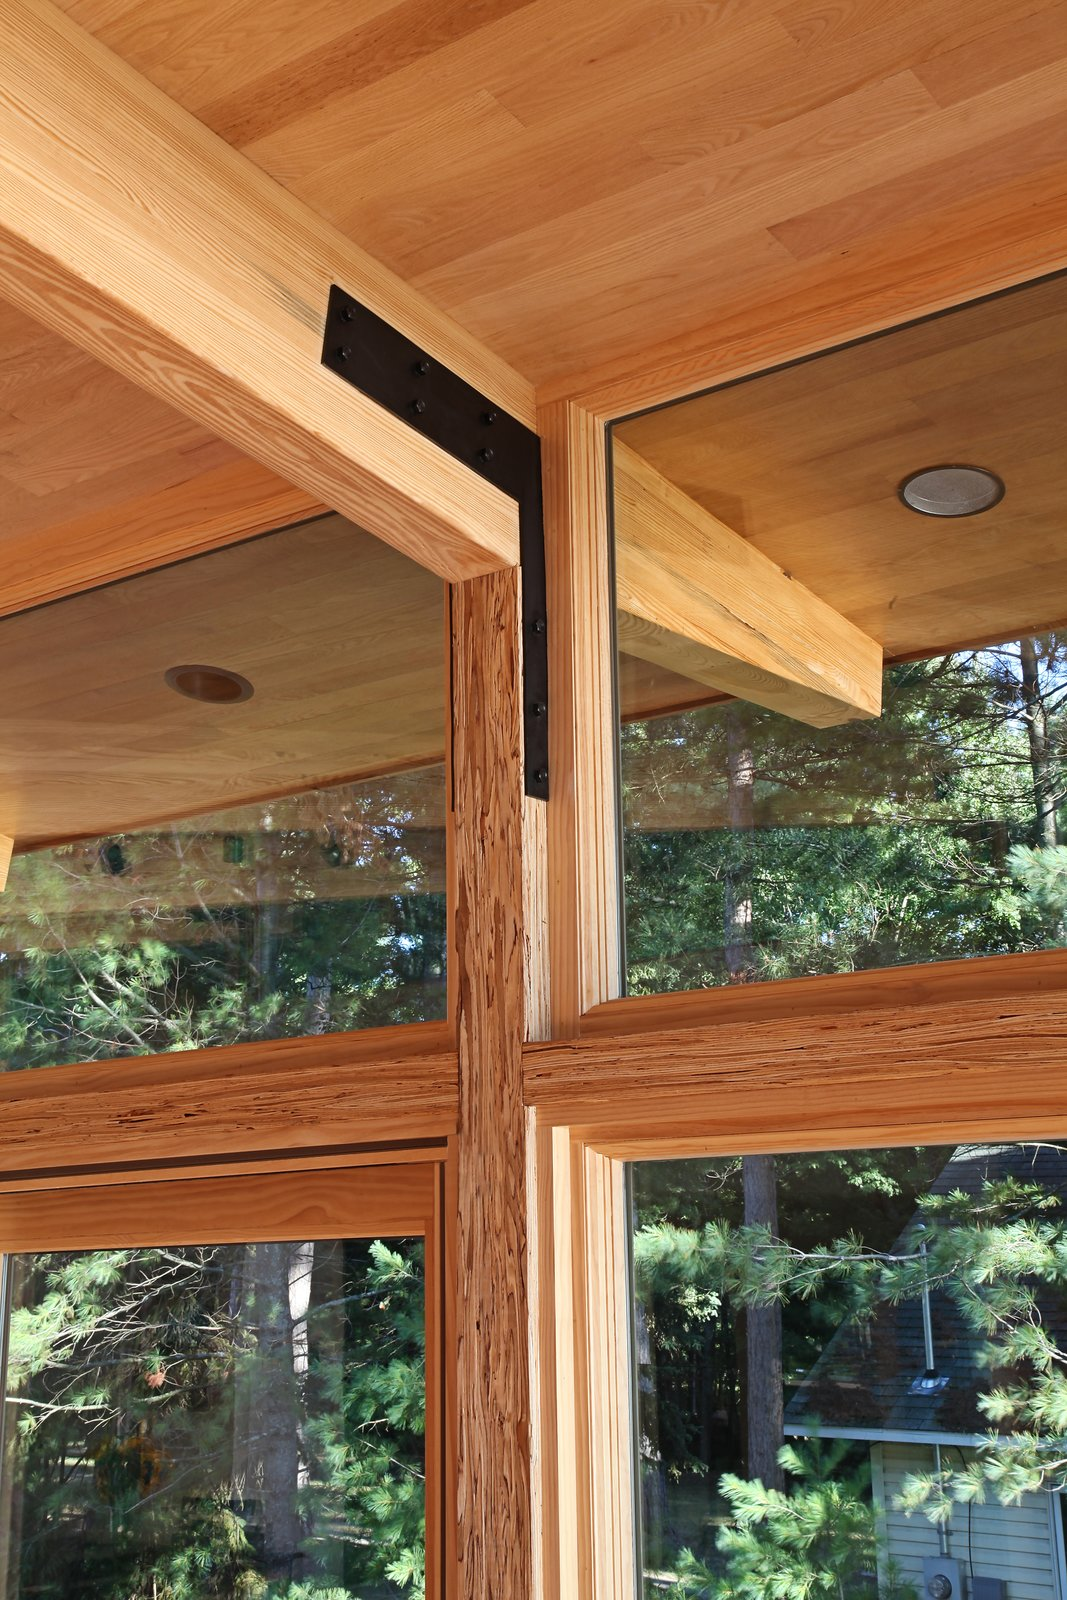 Structural detail showing post to column connection and custom bracket  Higgins Lake House by Jeff Jordan Architects